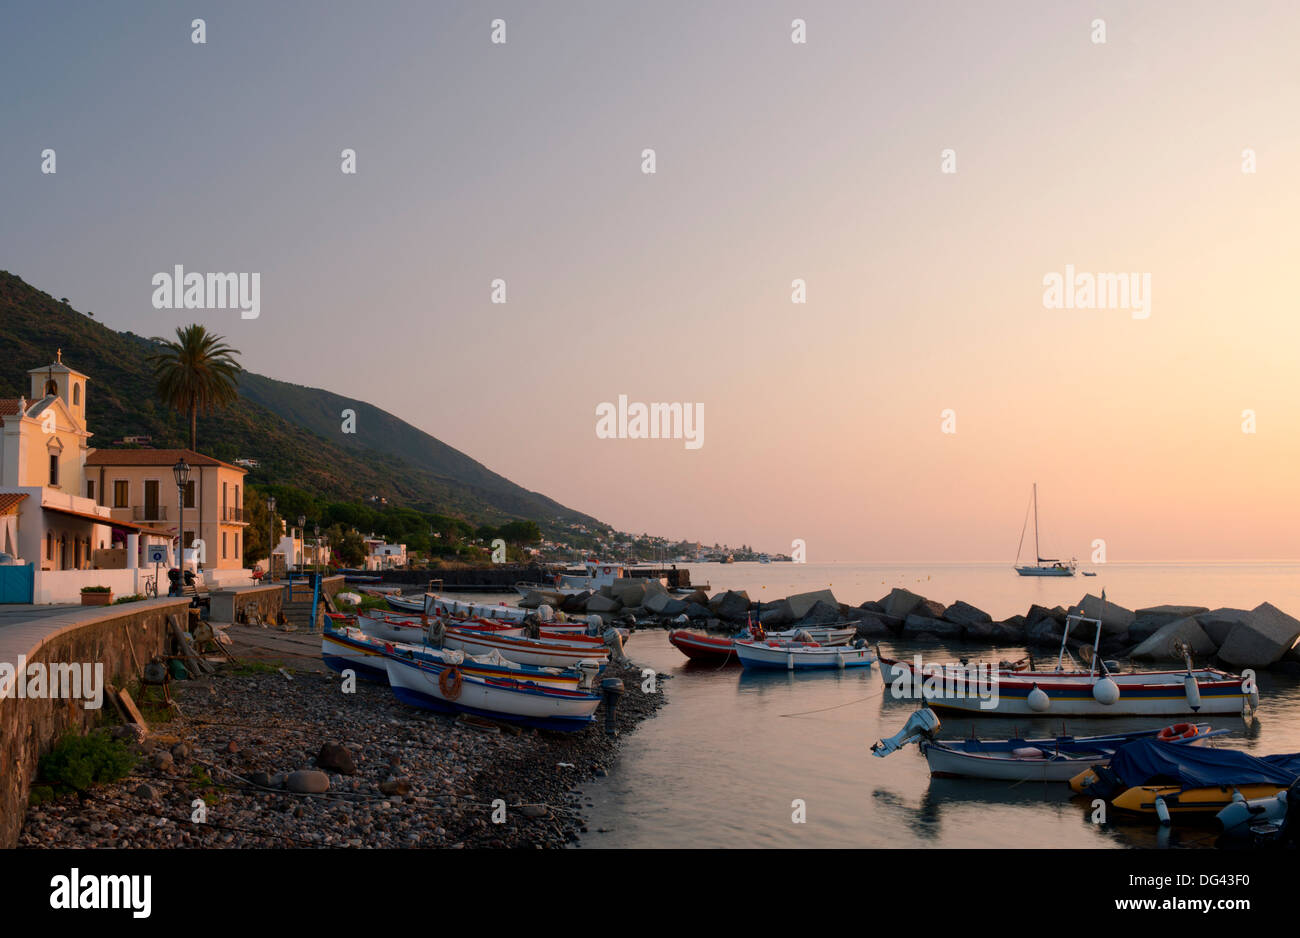 Fishing boats on the beach in Lingua, Salina, The Aeolian Islands, UNESCO Site, off Sicily, Messina Province, Italy - Stock Image